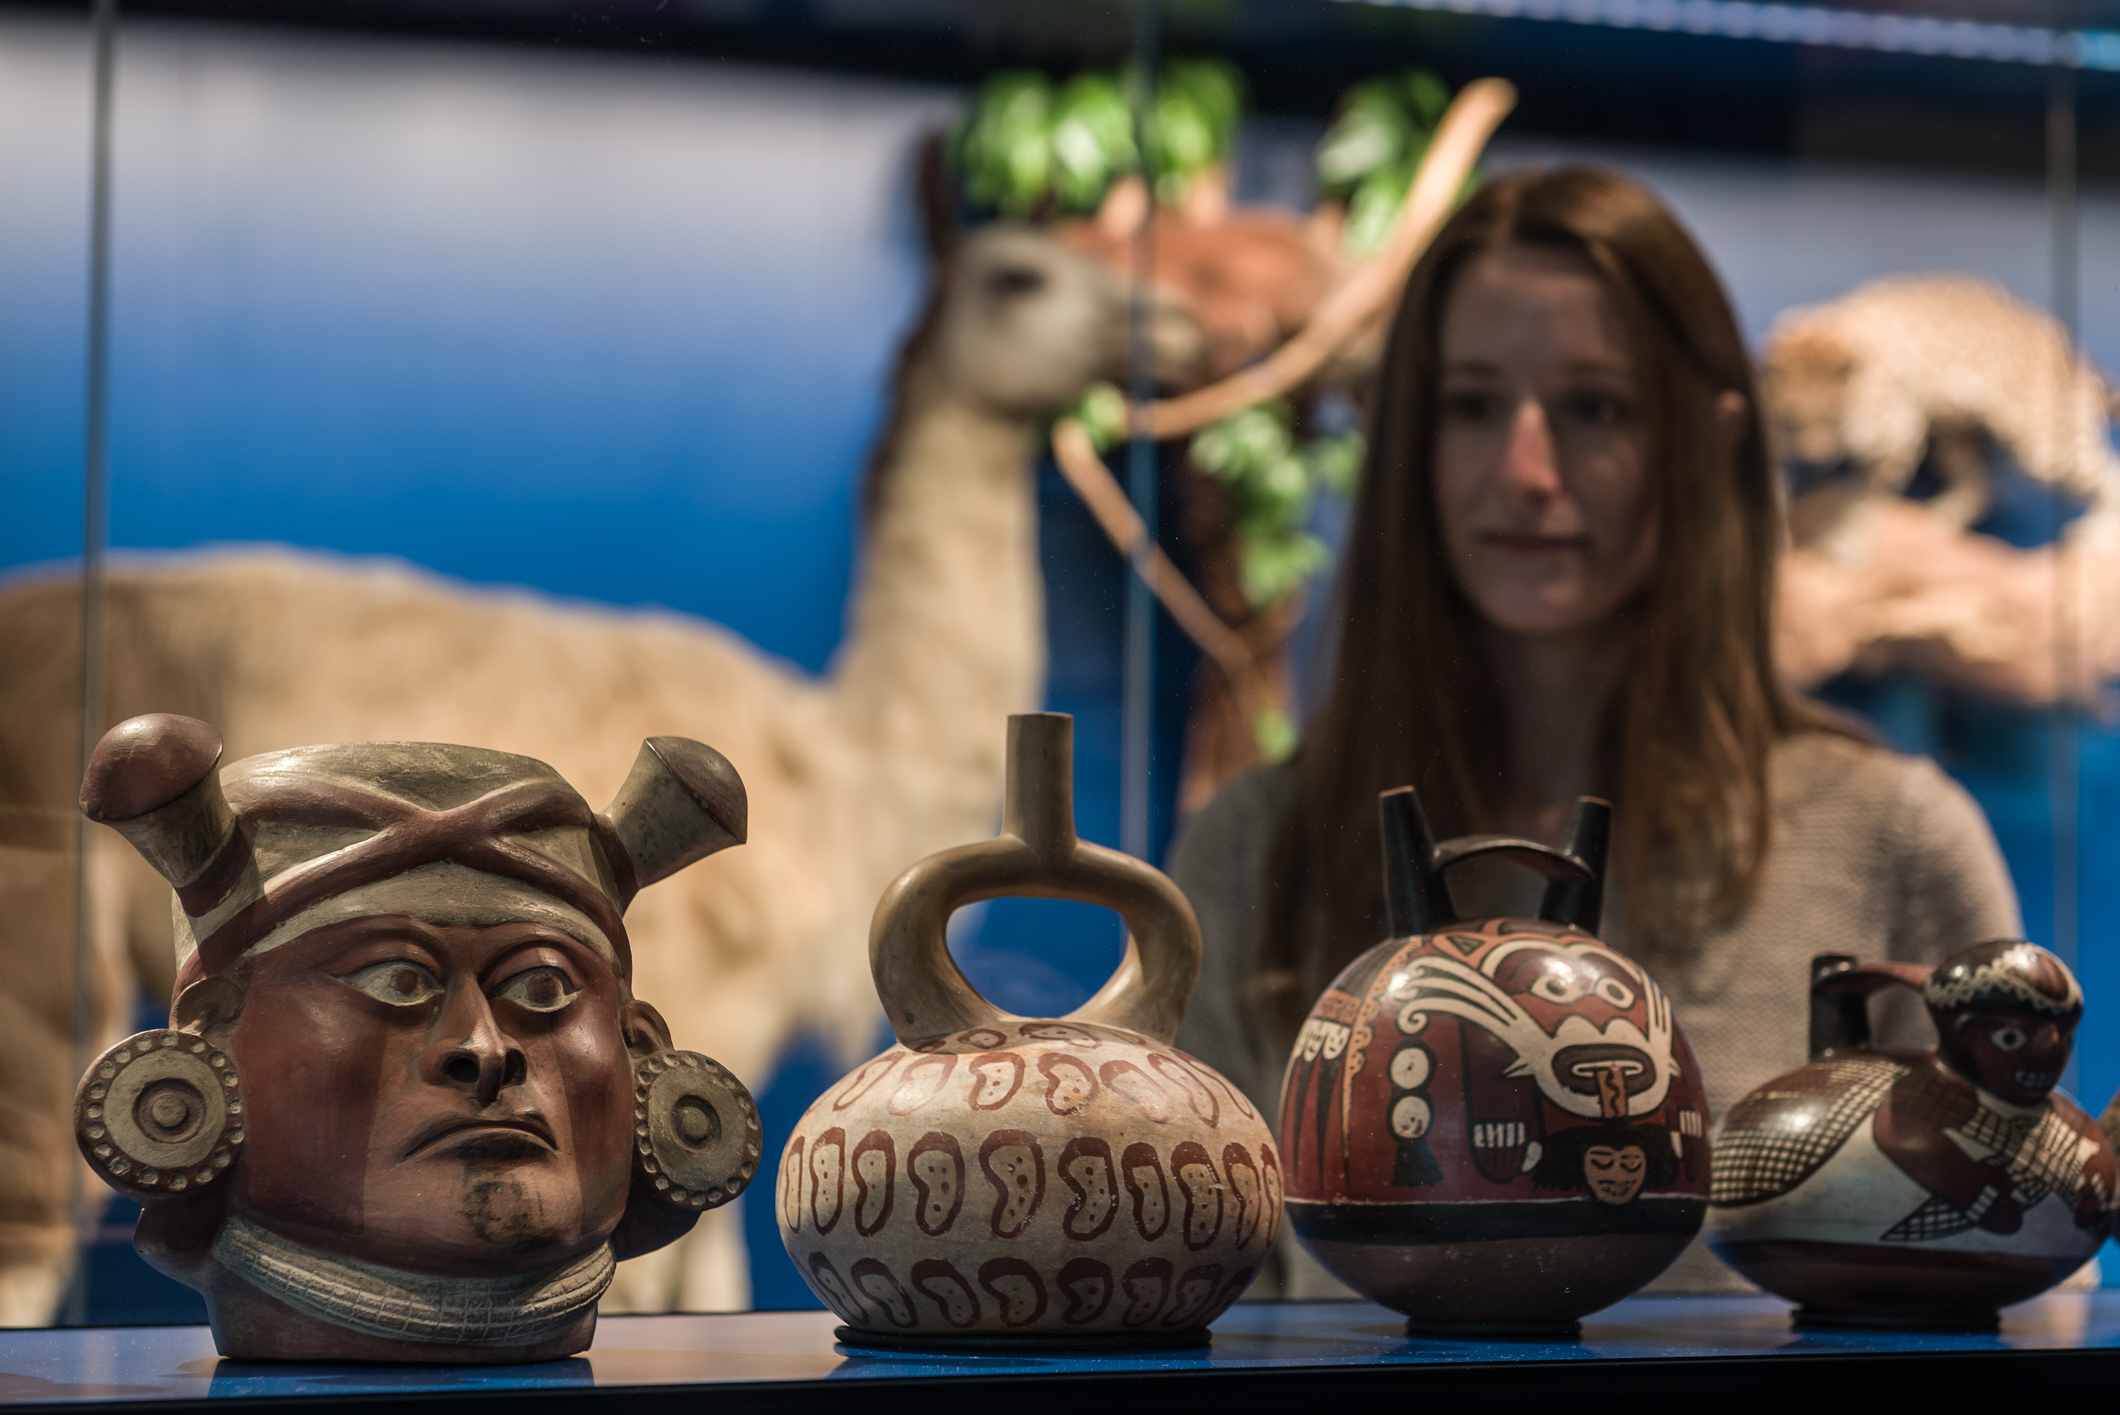 A person looks at exhibits in the Überseemuseum.